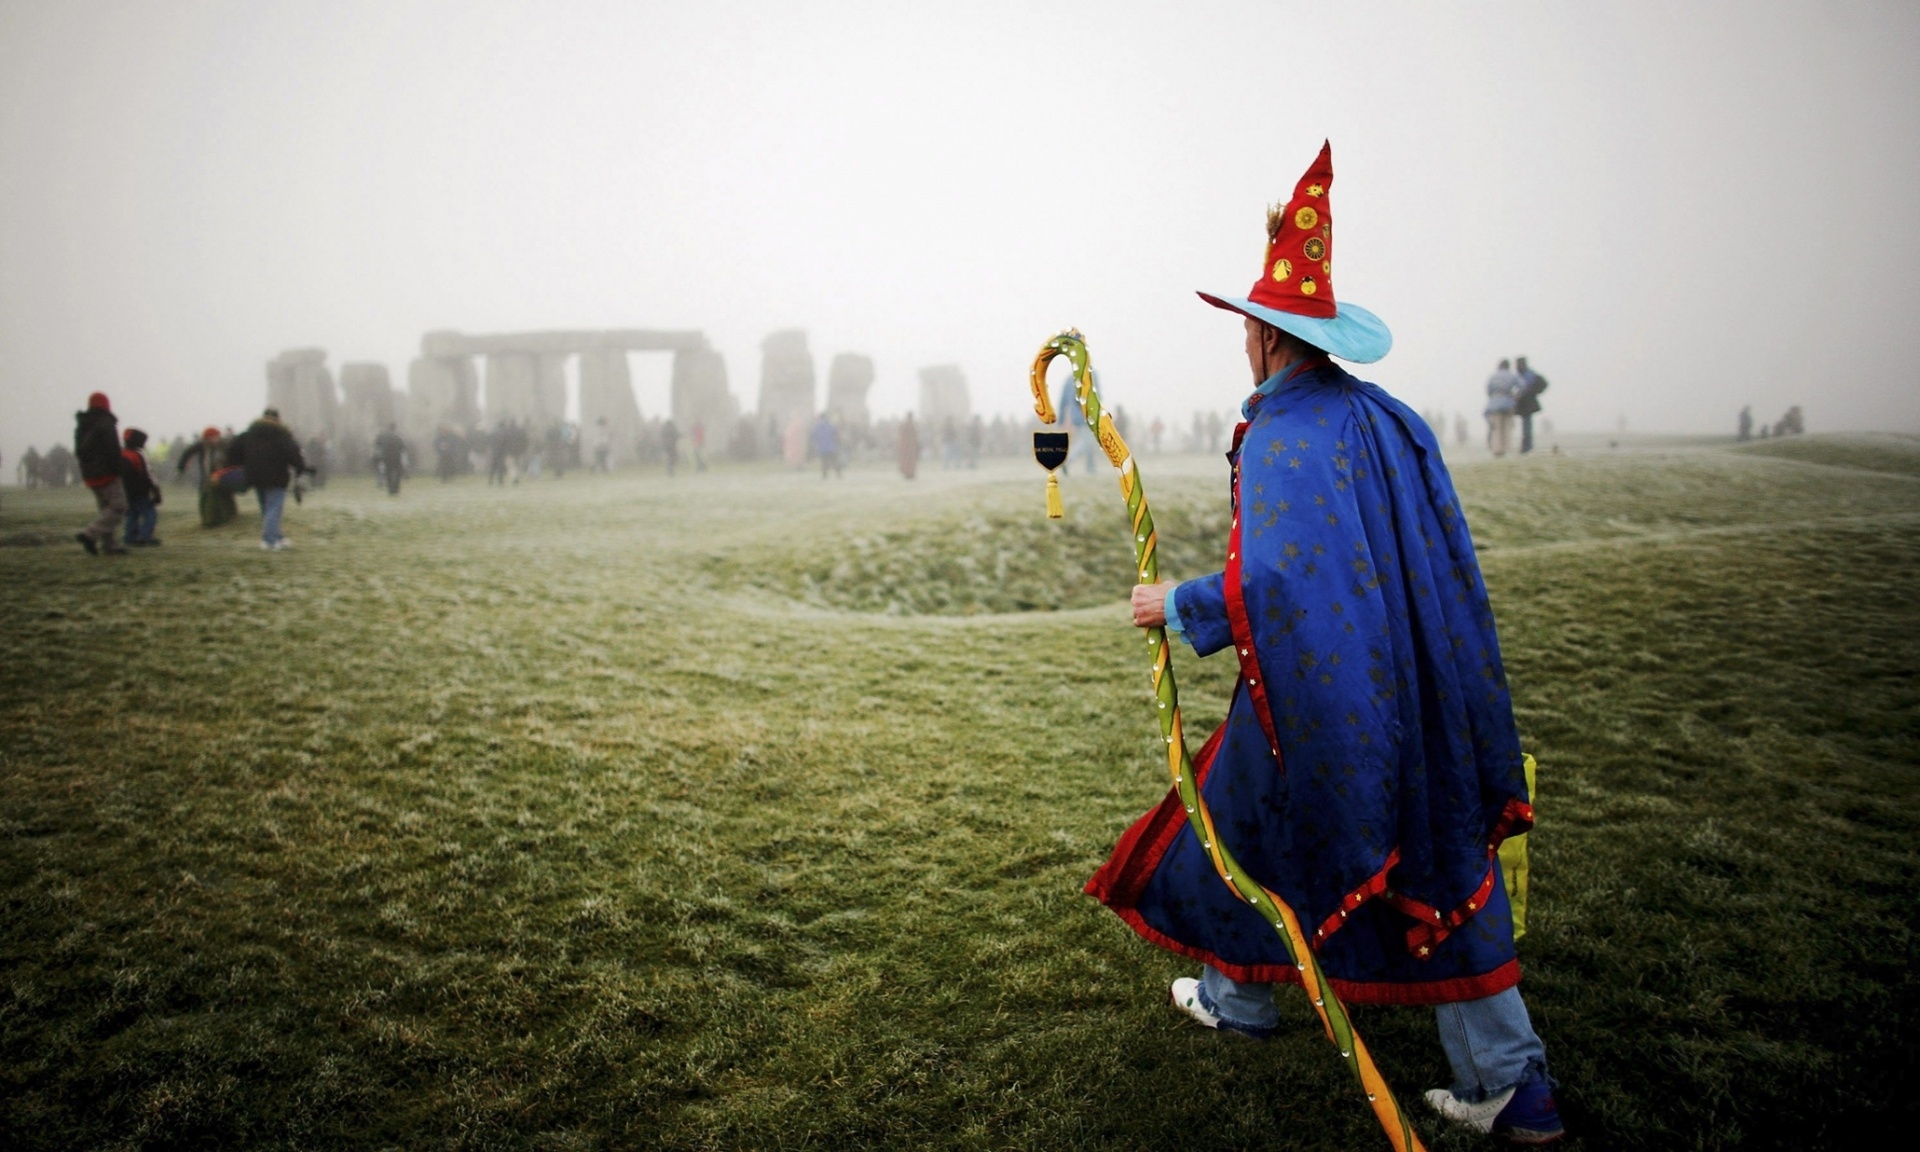 winter-solstice-wizard & Winter Solstice at Stonehenge and other U.K events over Christmas ...